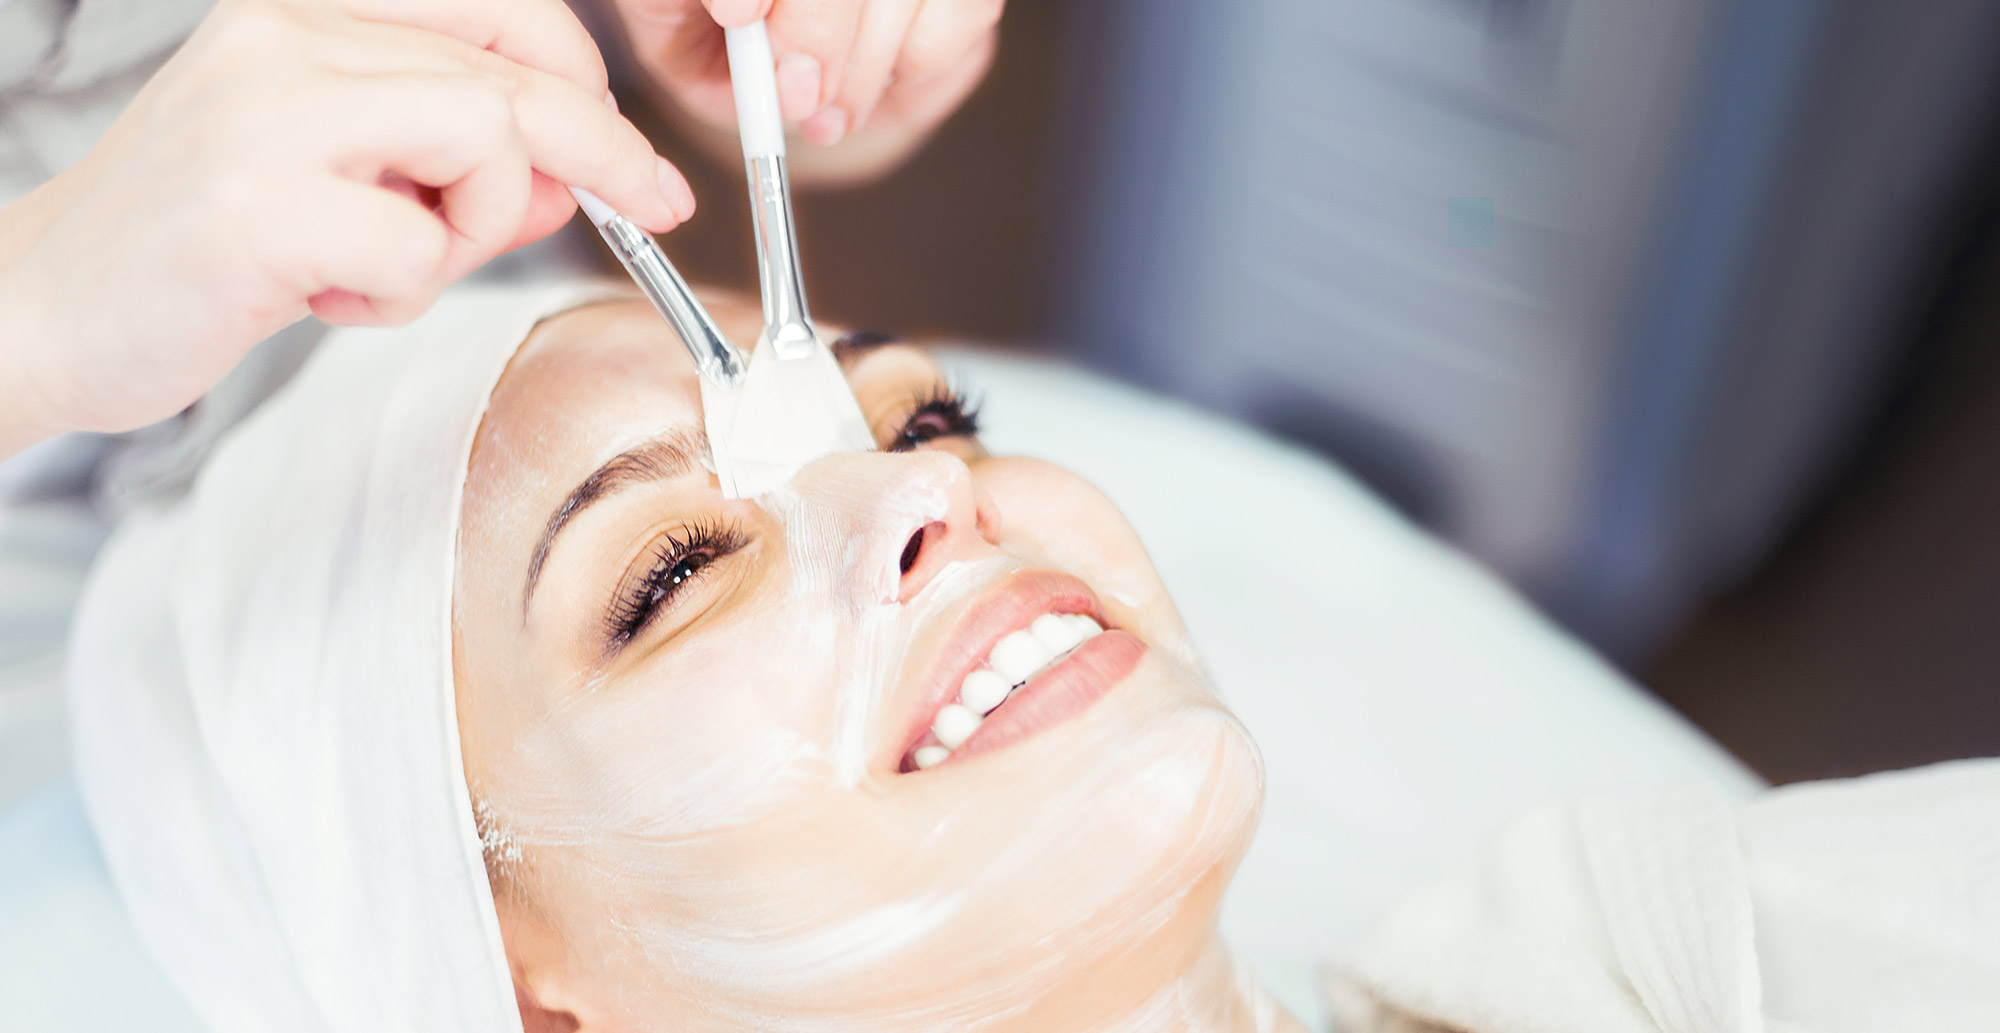 Give Your Face the Gift of Radiance with Our New Diamond Youth Facial